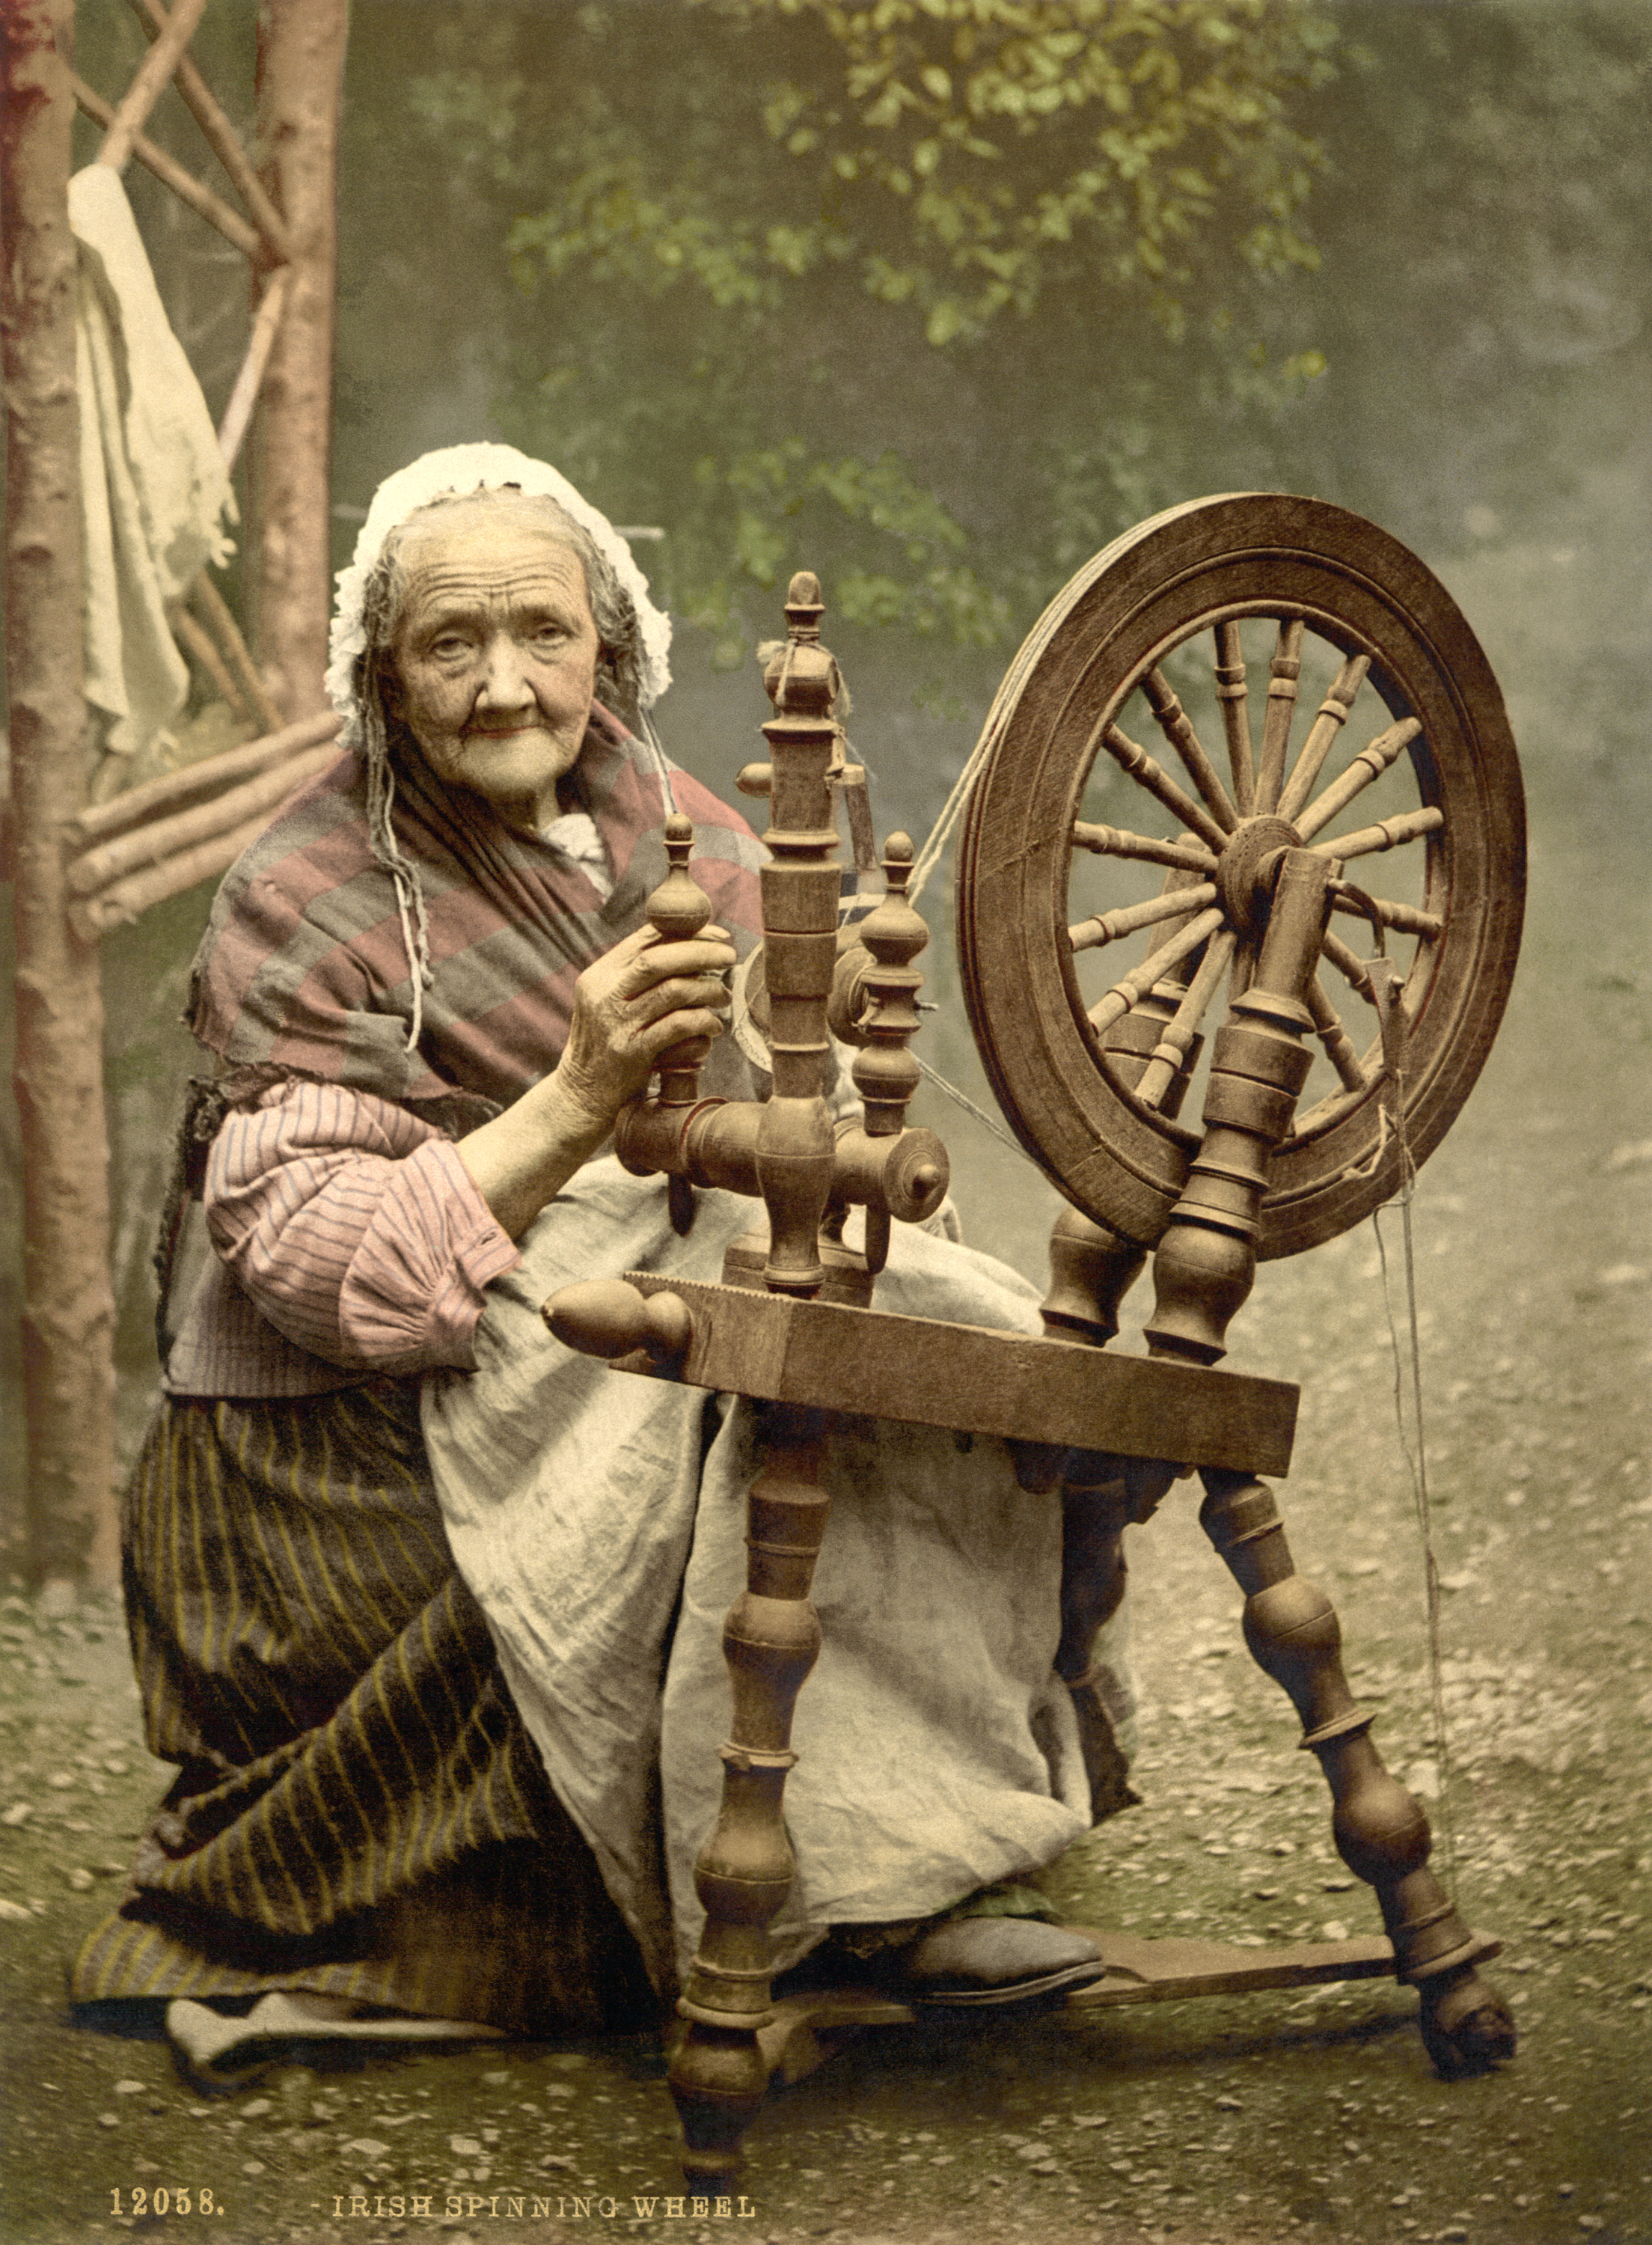 Woman with an Irish spinning wheel